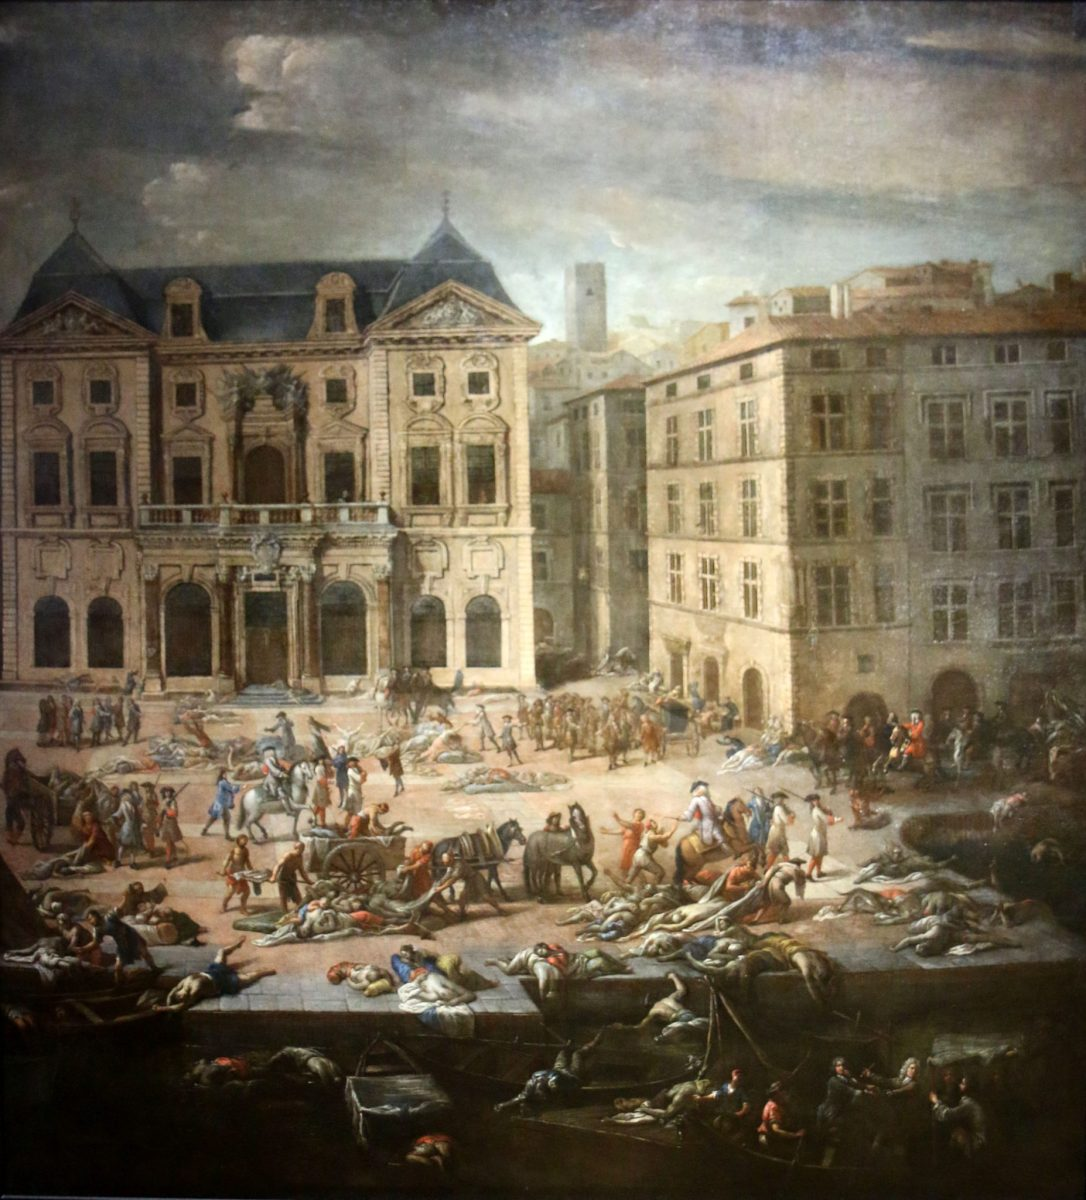 Michel Serre: View of Marseille's town hall during the Plague of 1720, painted 1721